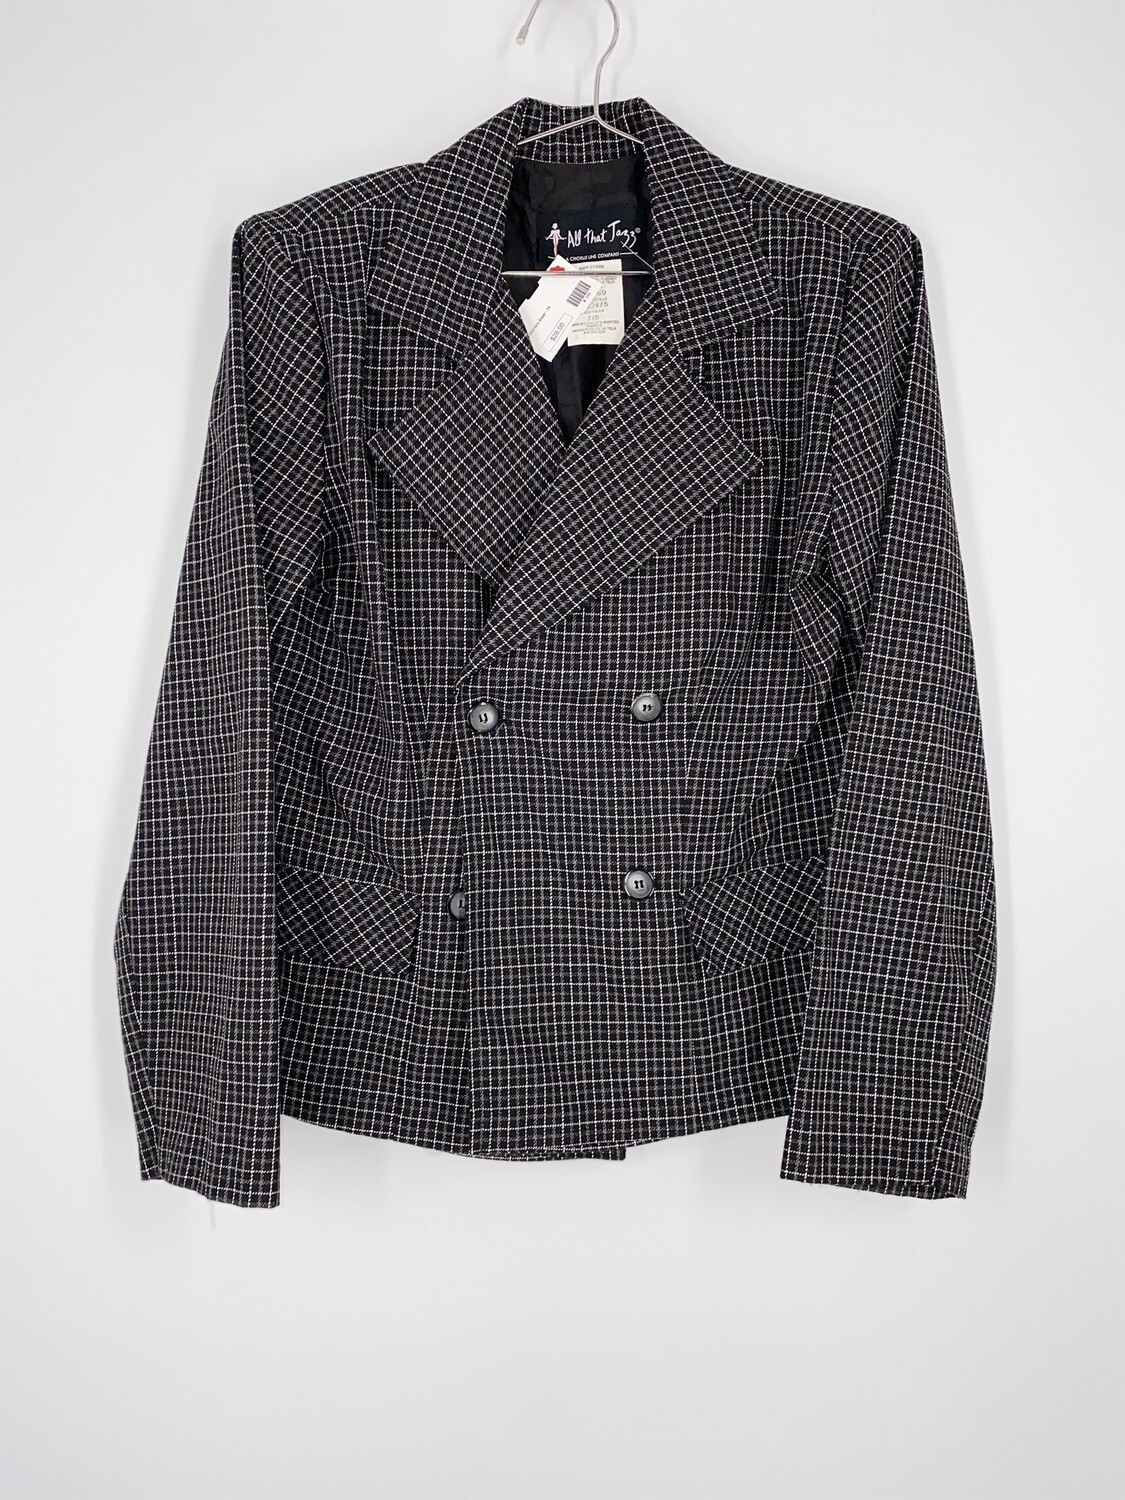 All That Jazz Black And White Plaid Blazer Size L